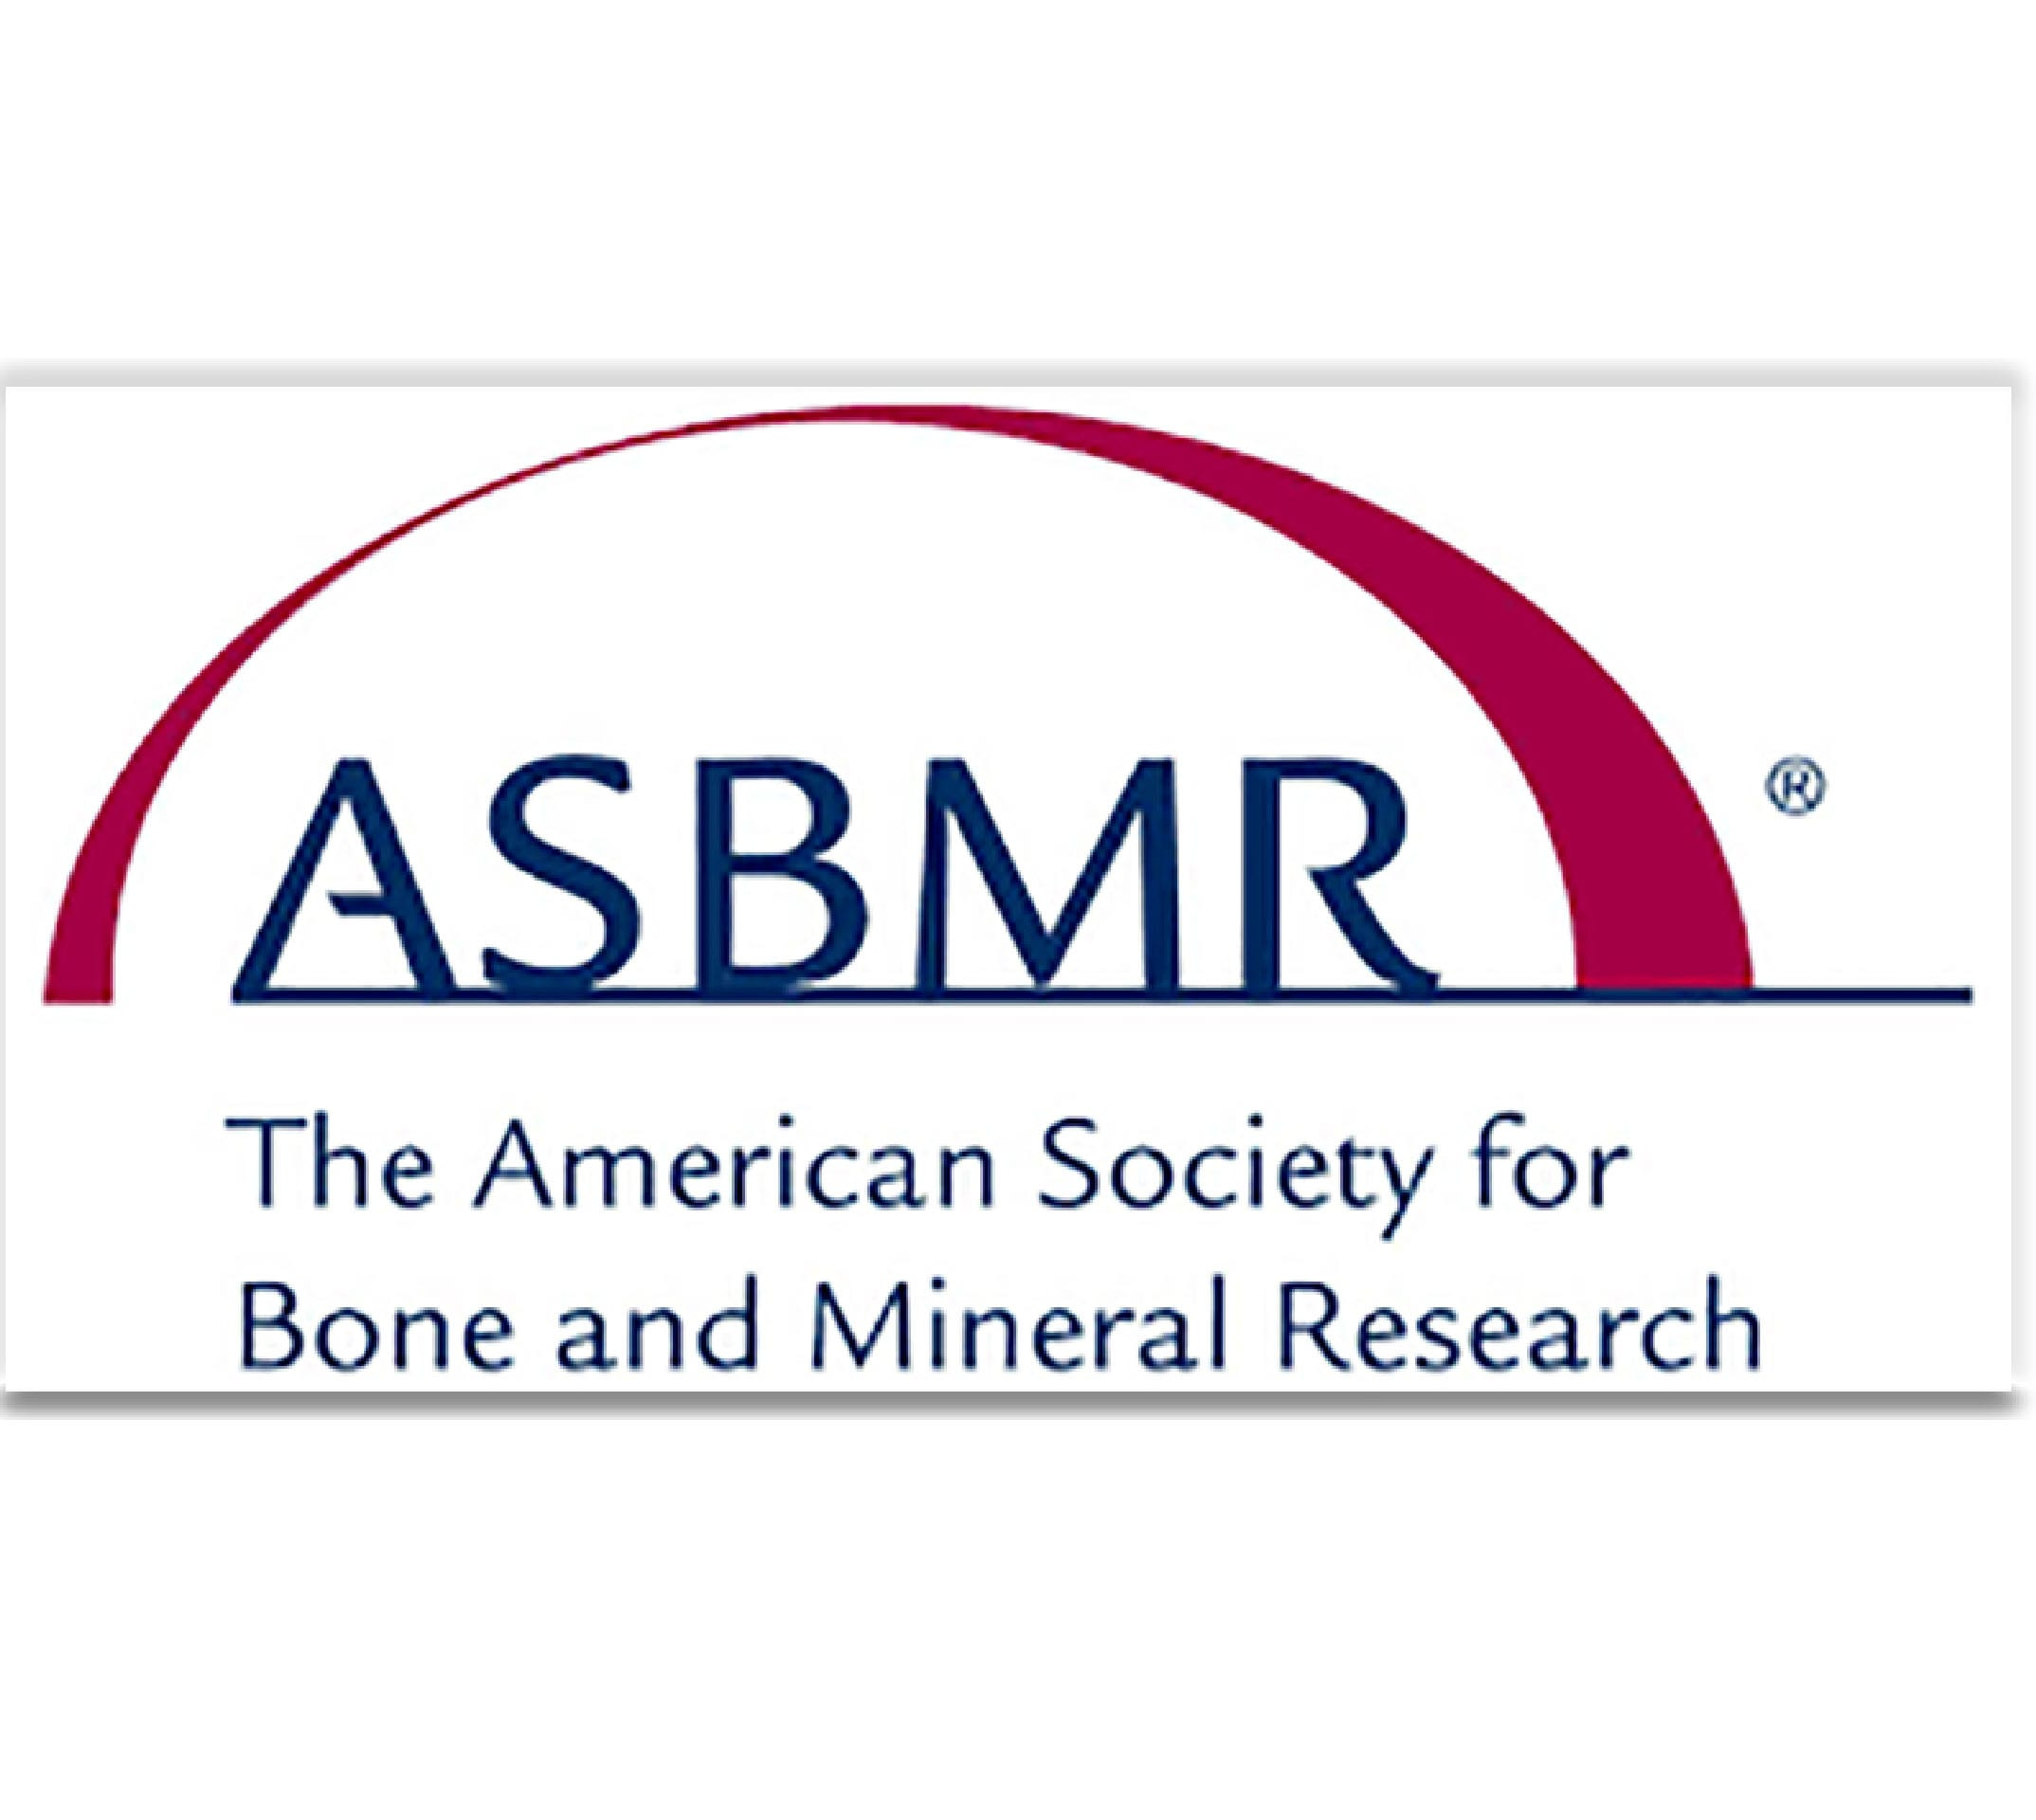 The American Society for Bone and Mineral Research